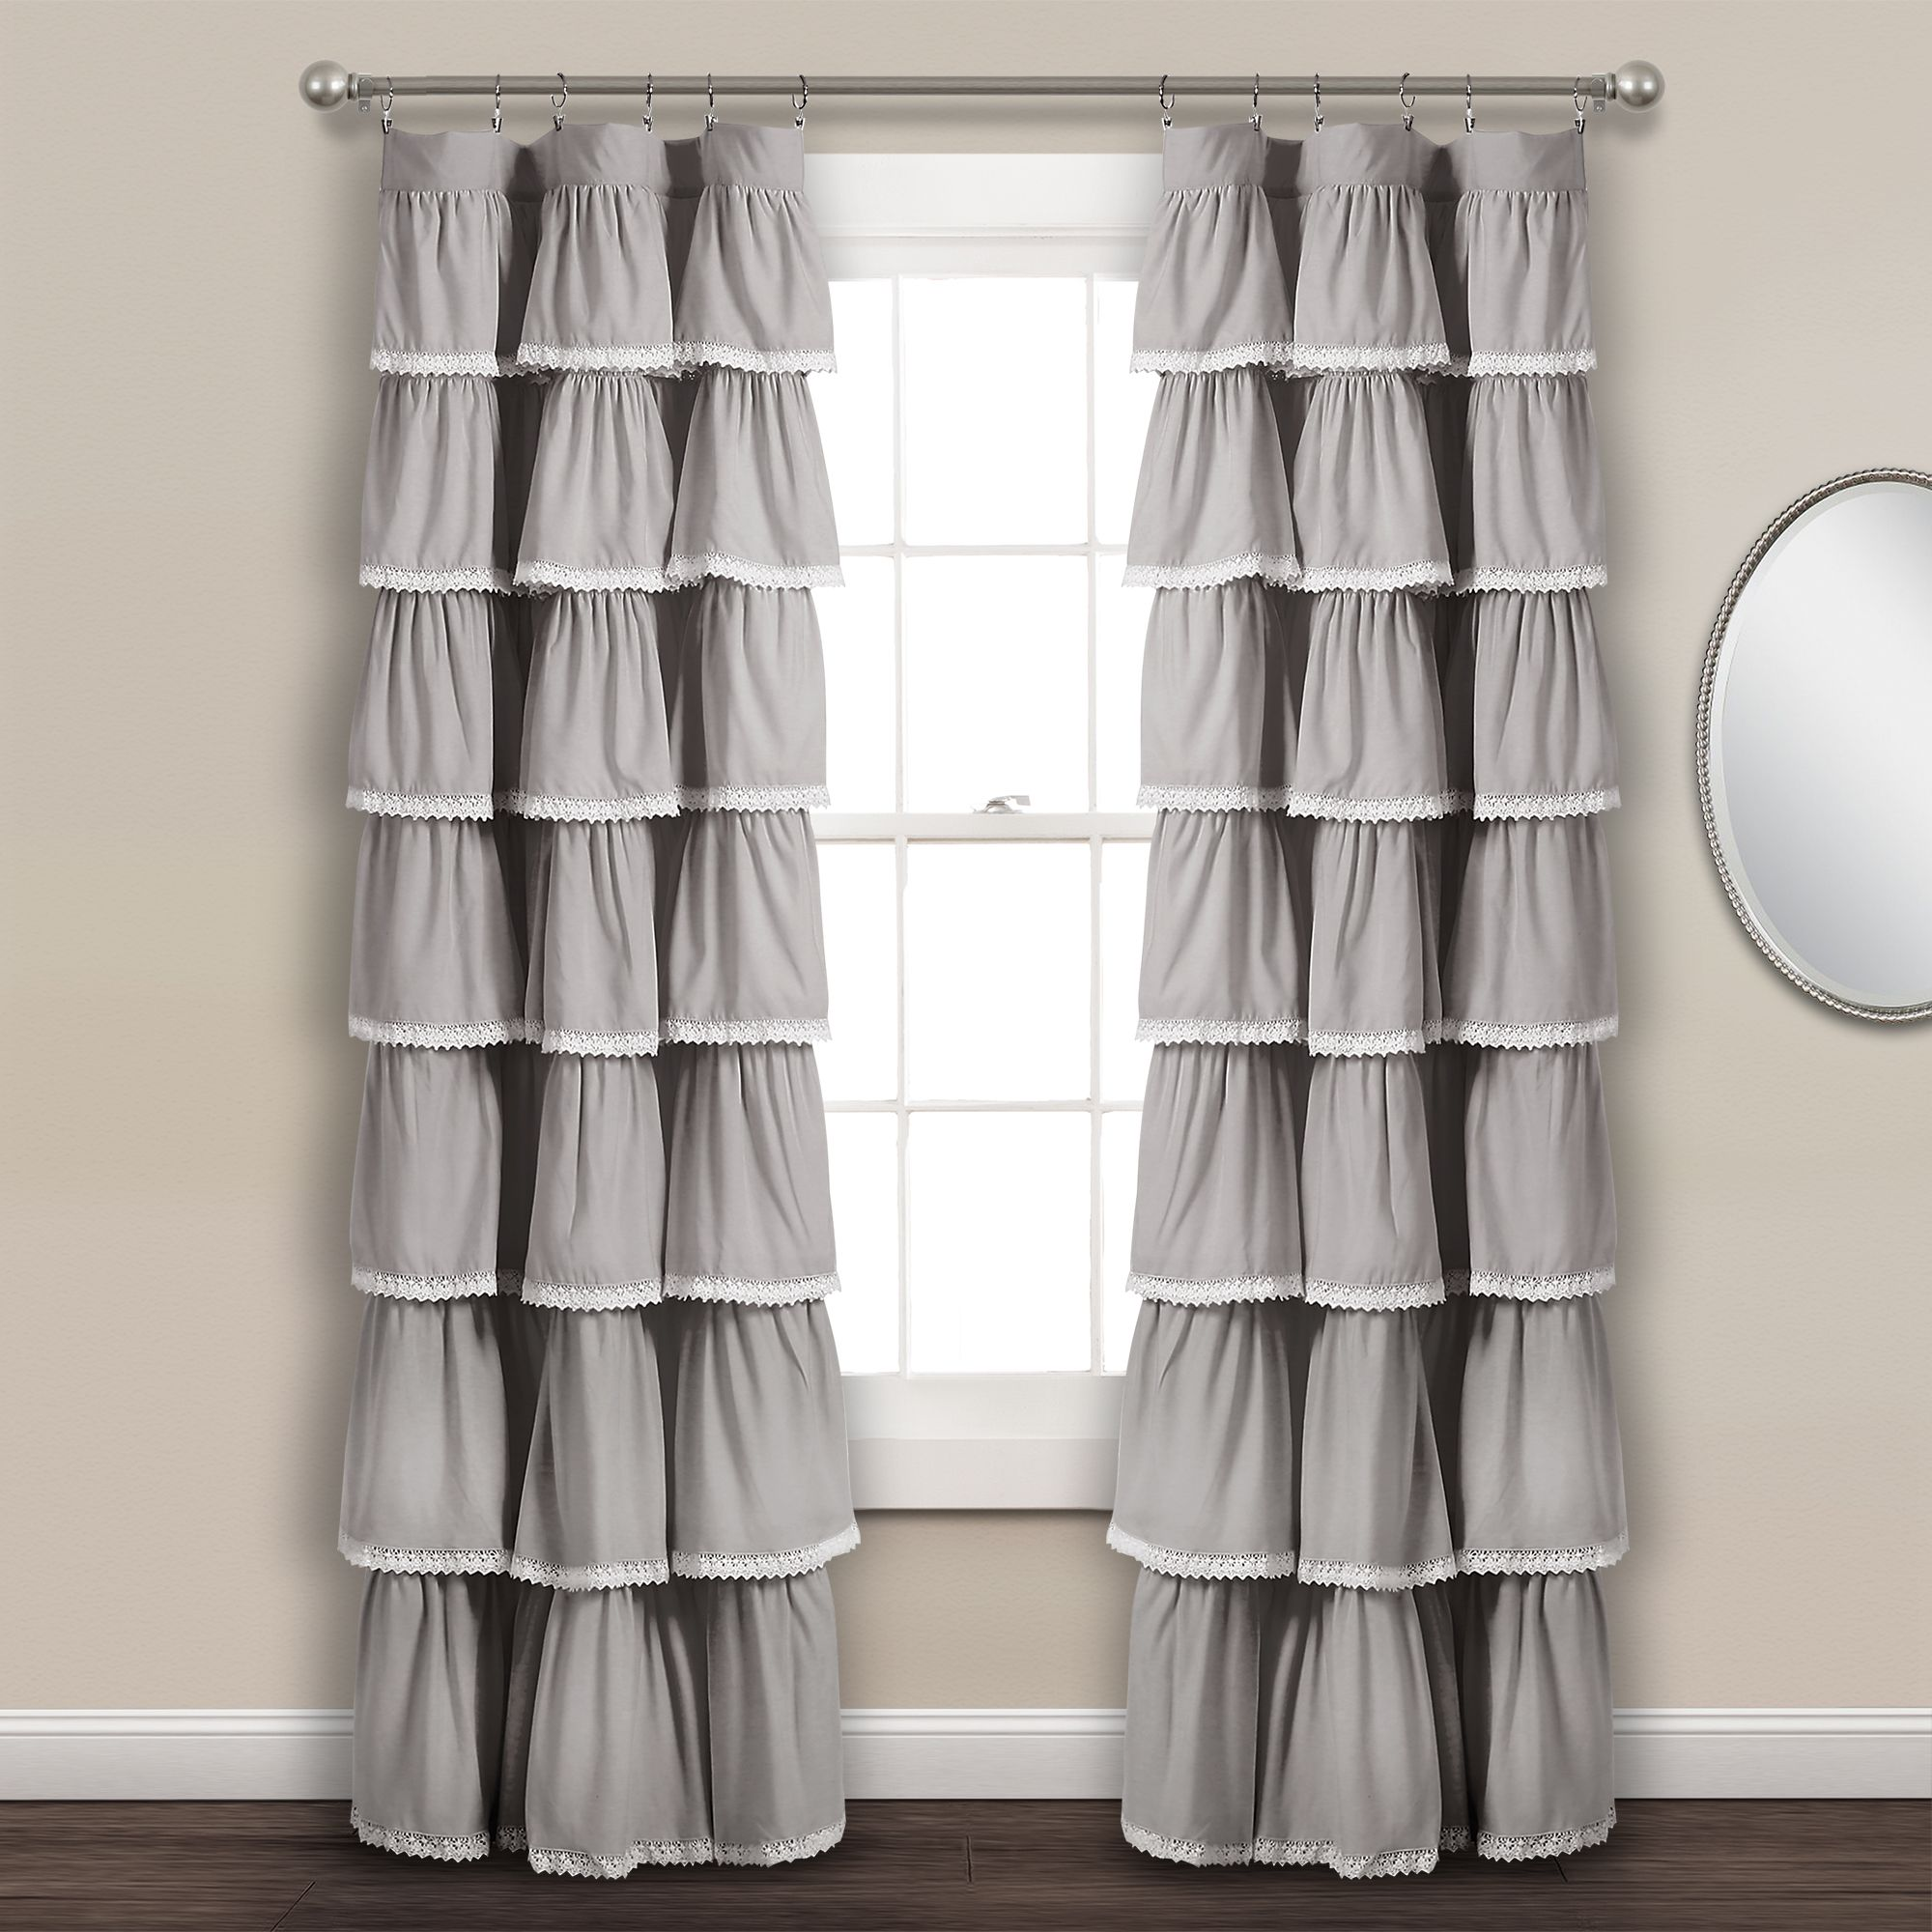 Home In 2020 Ruffle Curtains Panel Curtains Lace Curtain Panels